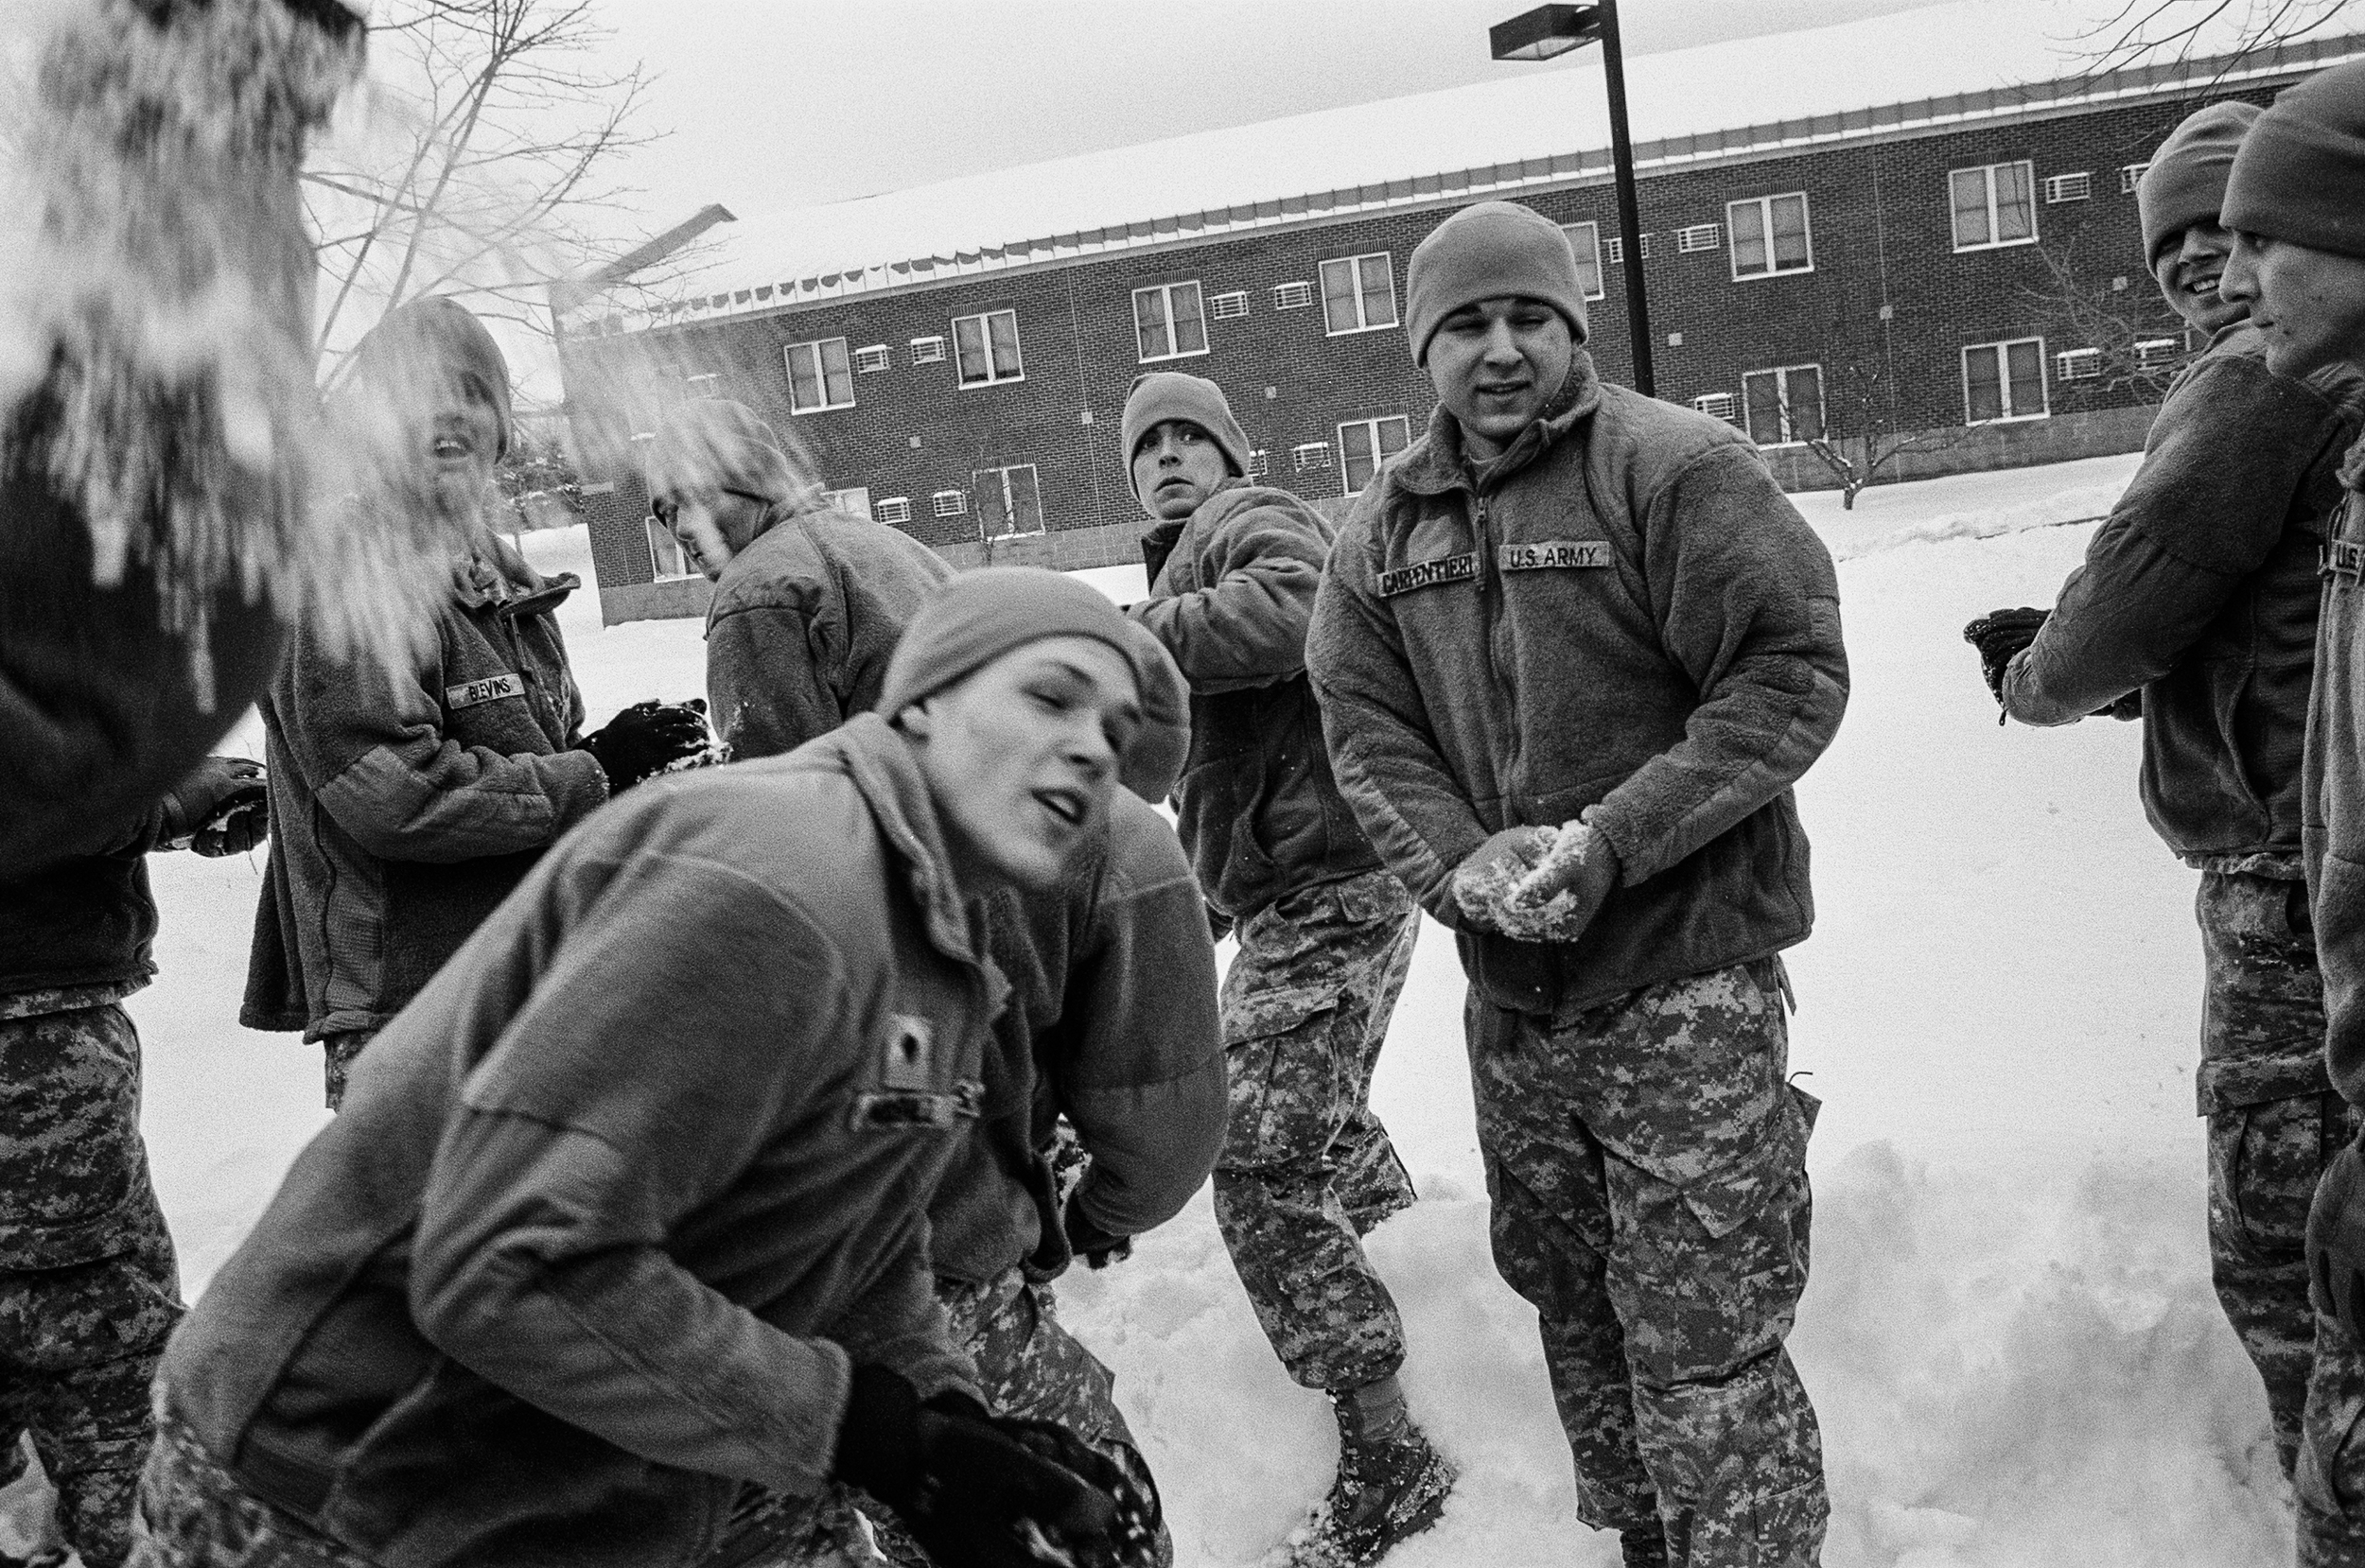 Soldiers of Bravo Company, 1-32nd Infantry Regiment have a snowball fight after being released for the weekend at the 10th Mountain Division base, Fort Drum, New York, 2010.